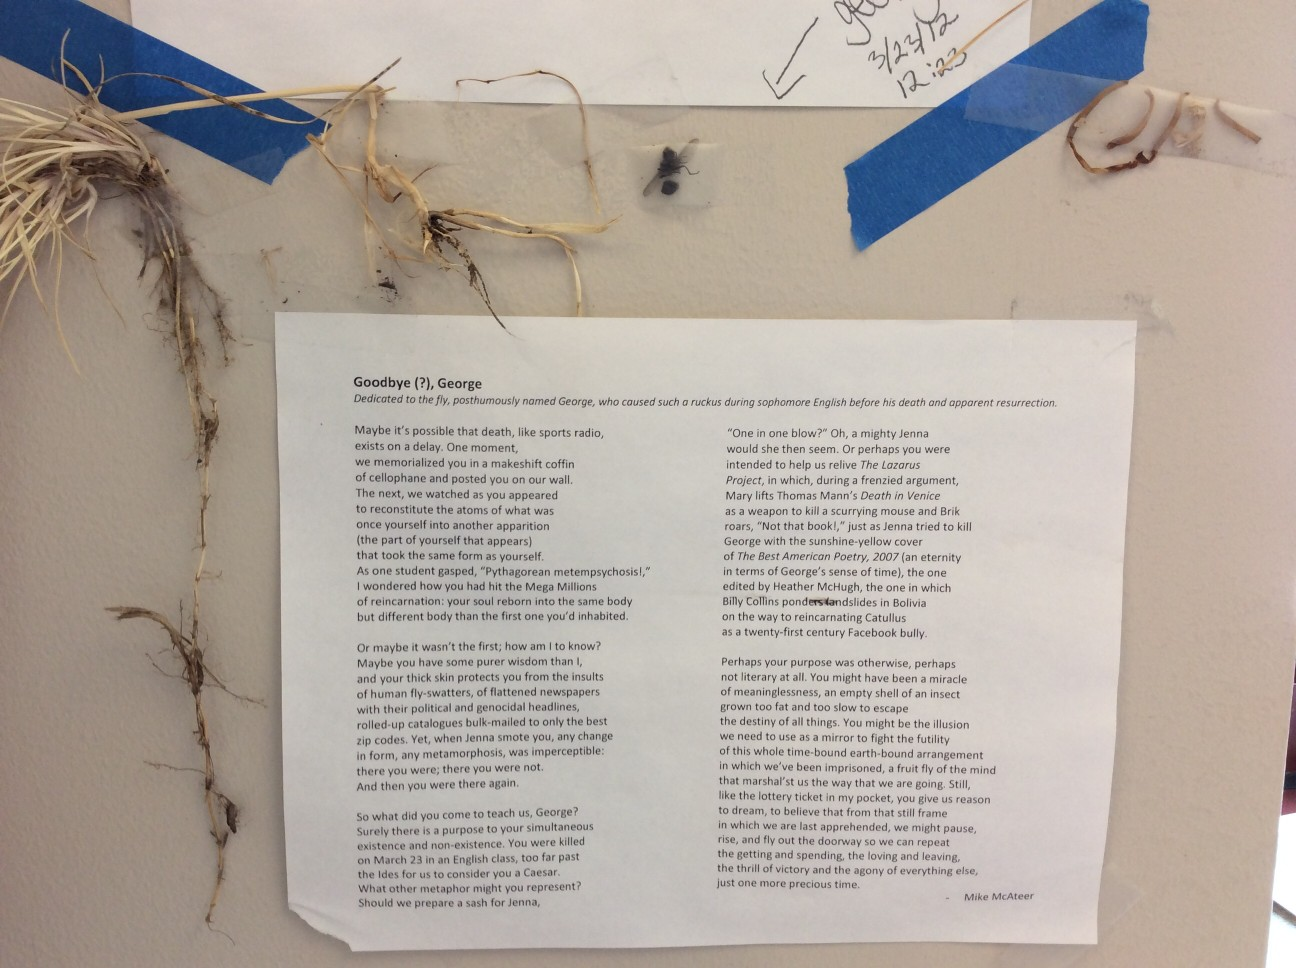 It may be safe to say that our classroom is the only one in America - nay, the only one in the world - that has had a dead fly encased in its cellophane sarcophagus for two and a half years. The poem about George's nearly instant reincarnation is a daily reminder of the mysterious ways of the universe.